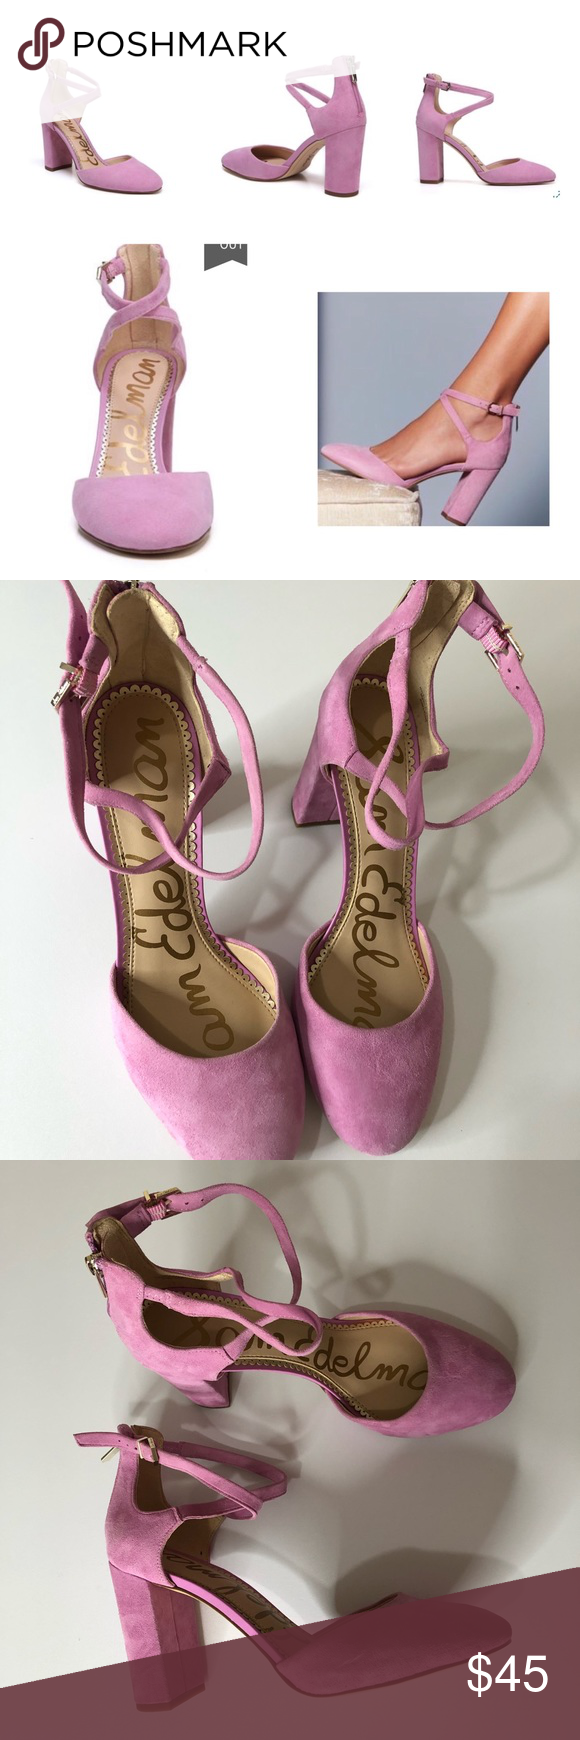 49f9c7787c Sam Edelman | Fiji Pink Simmons Pump Great used condition Some exterior  blemishes on the shoe